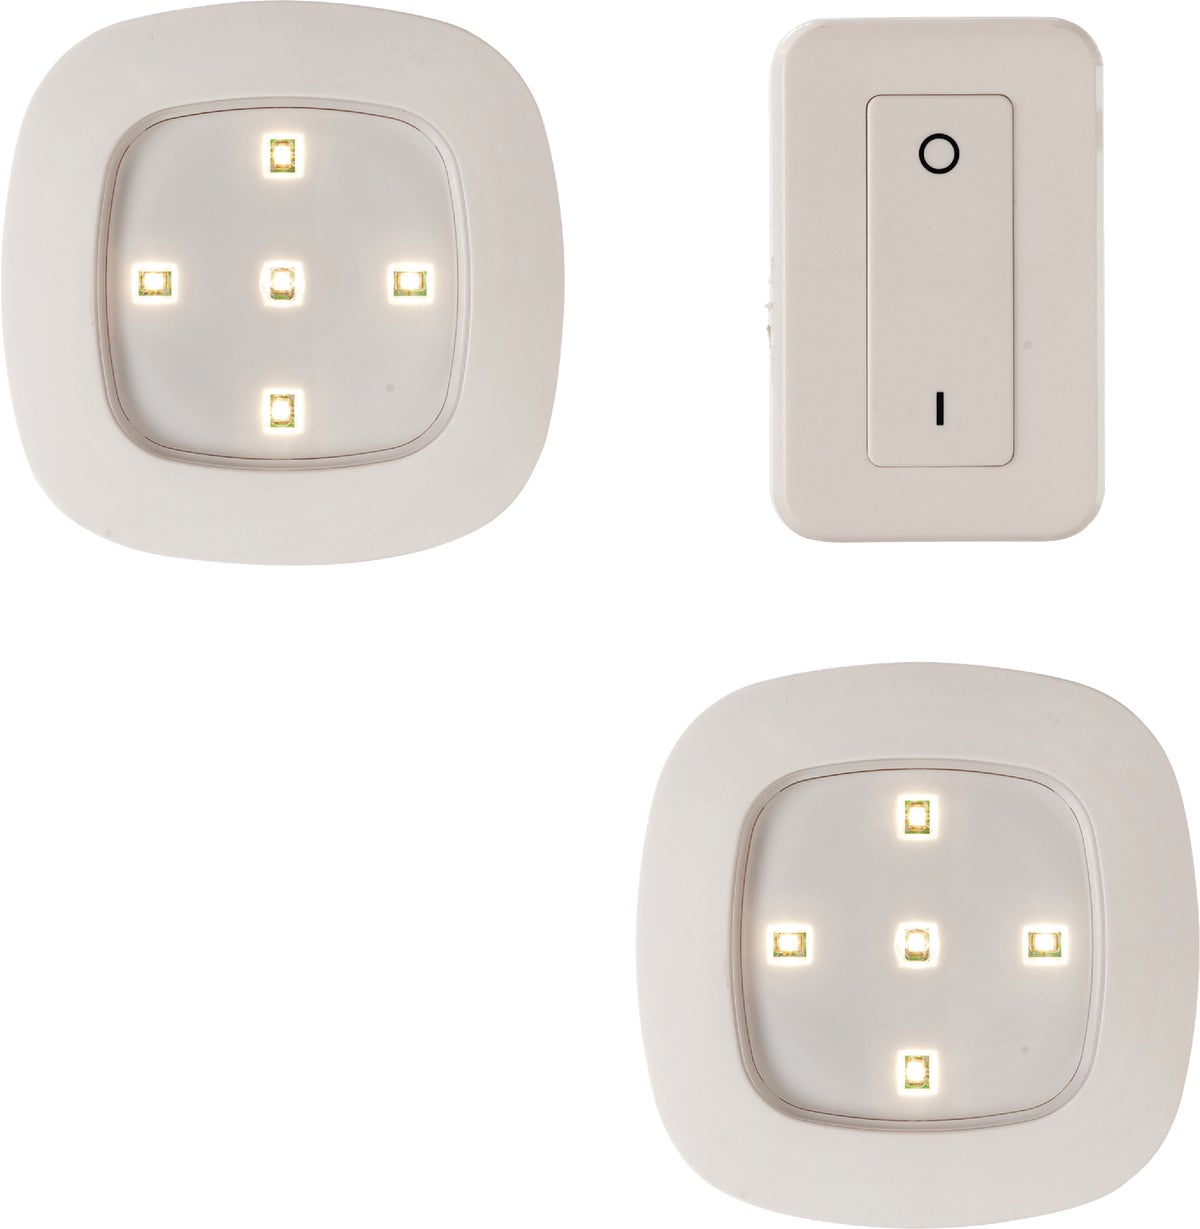 Buy Light It Led Remote Control Battery Operated Ceiling Light Set White